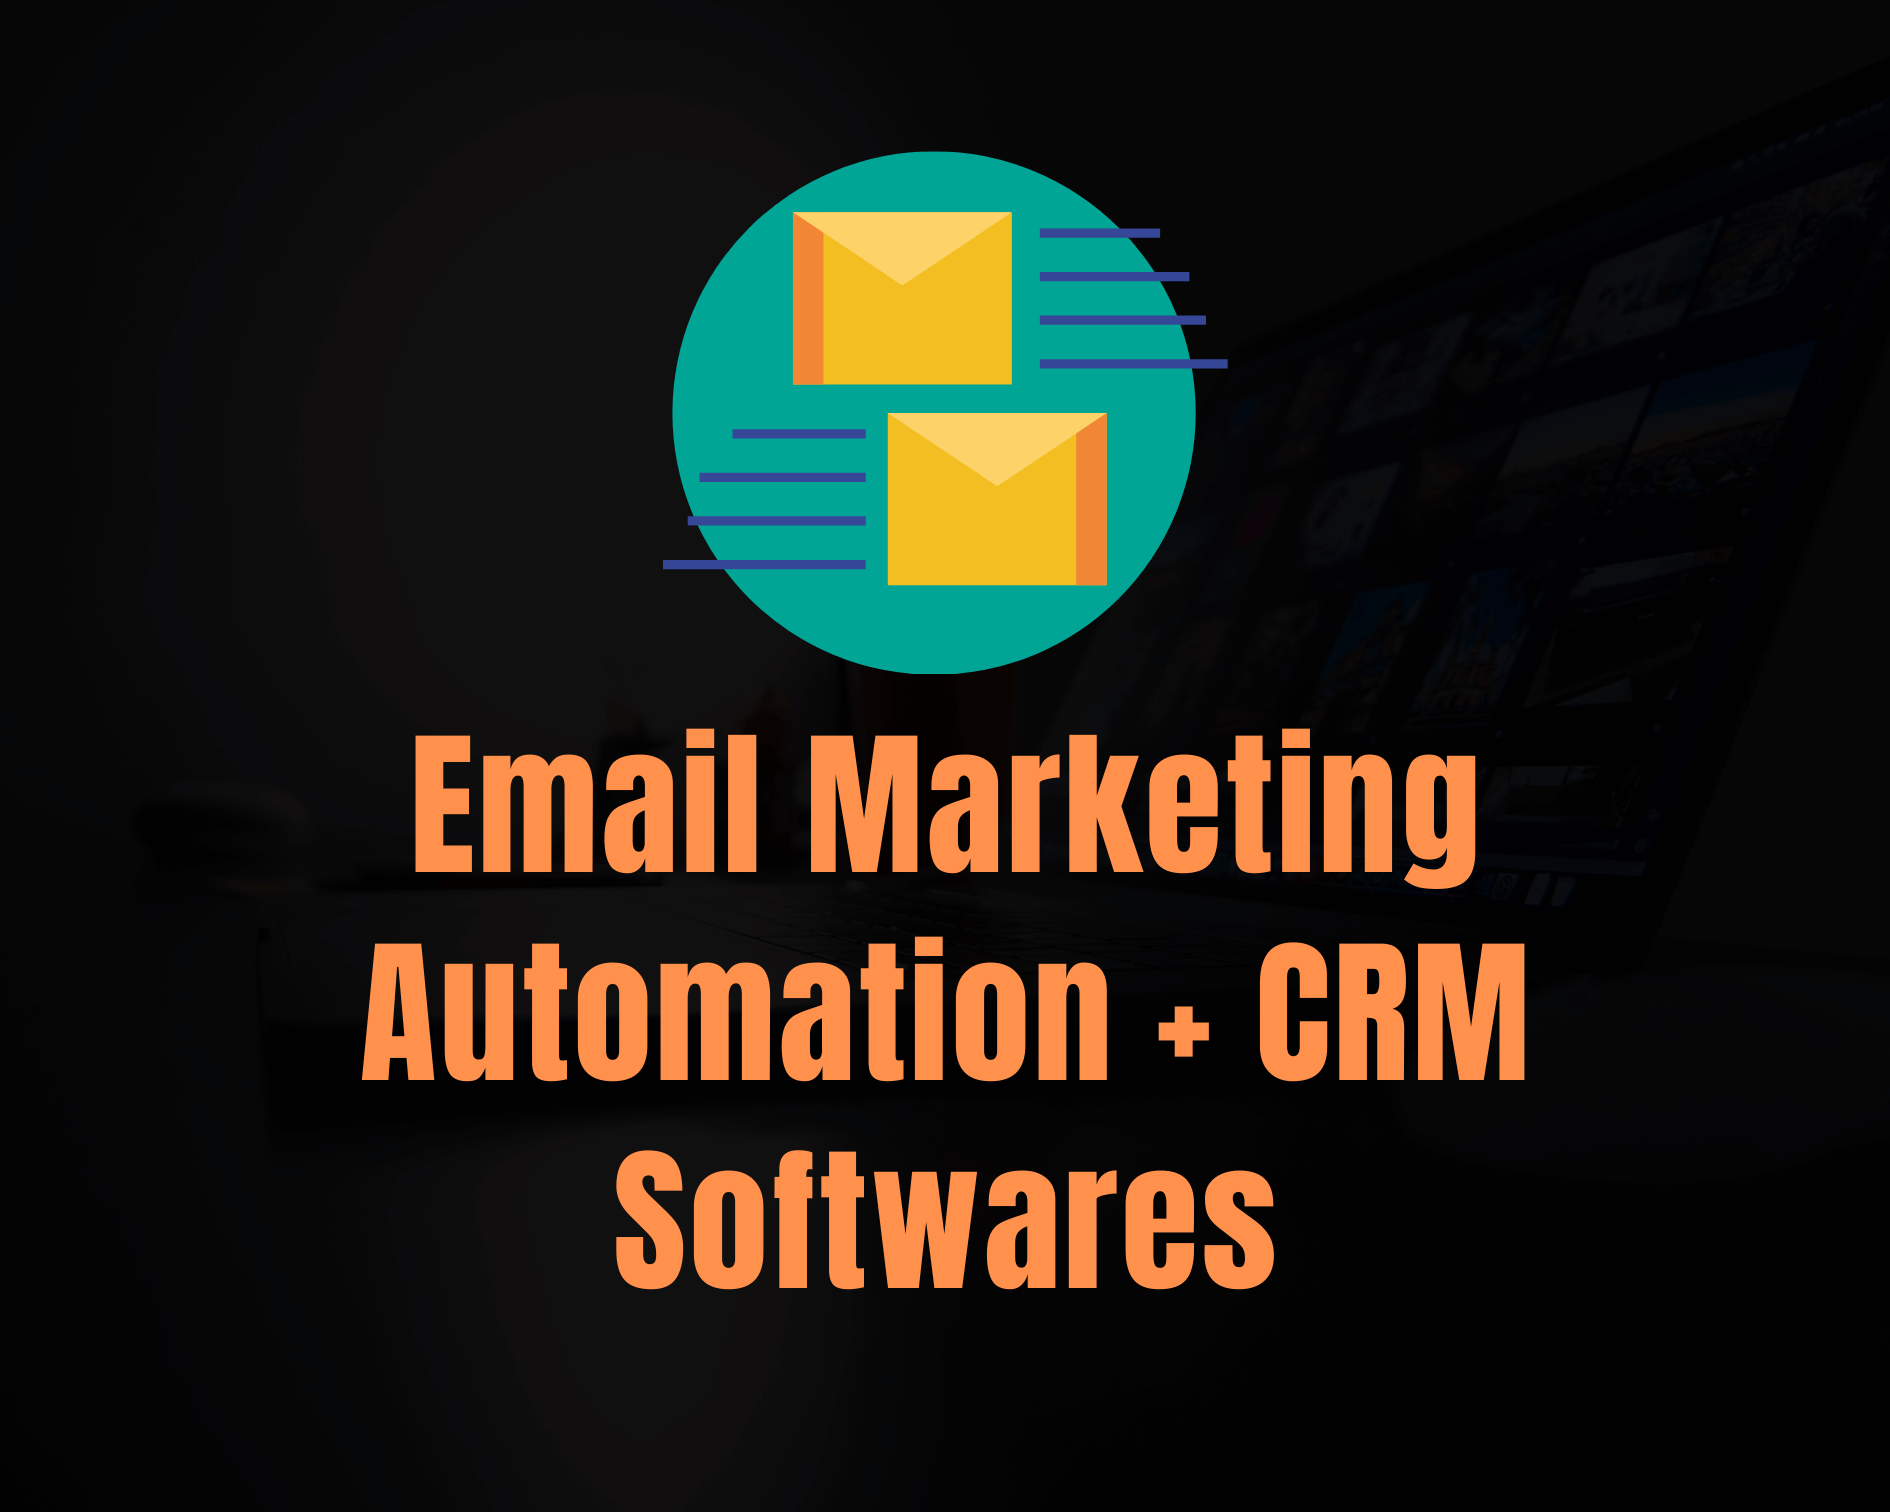 5 Best Email Marketing Automation + CRM Software in 2021